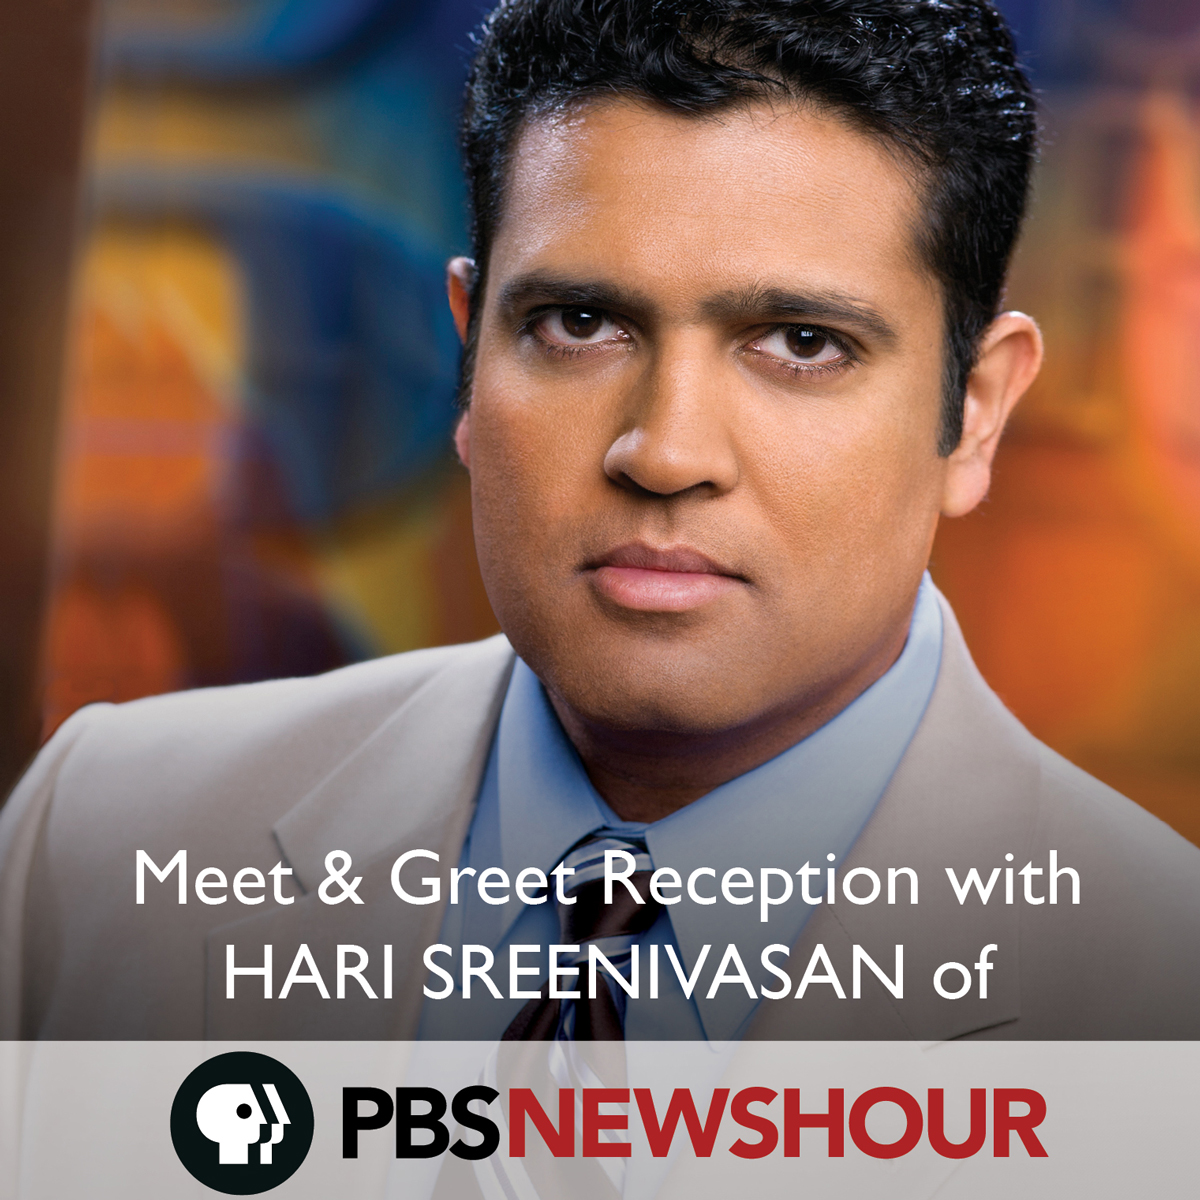 KNPB Meet & Greet with Hari Sreenivasan of PBS NewsHour